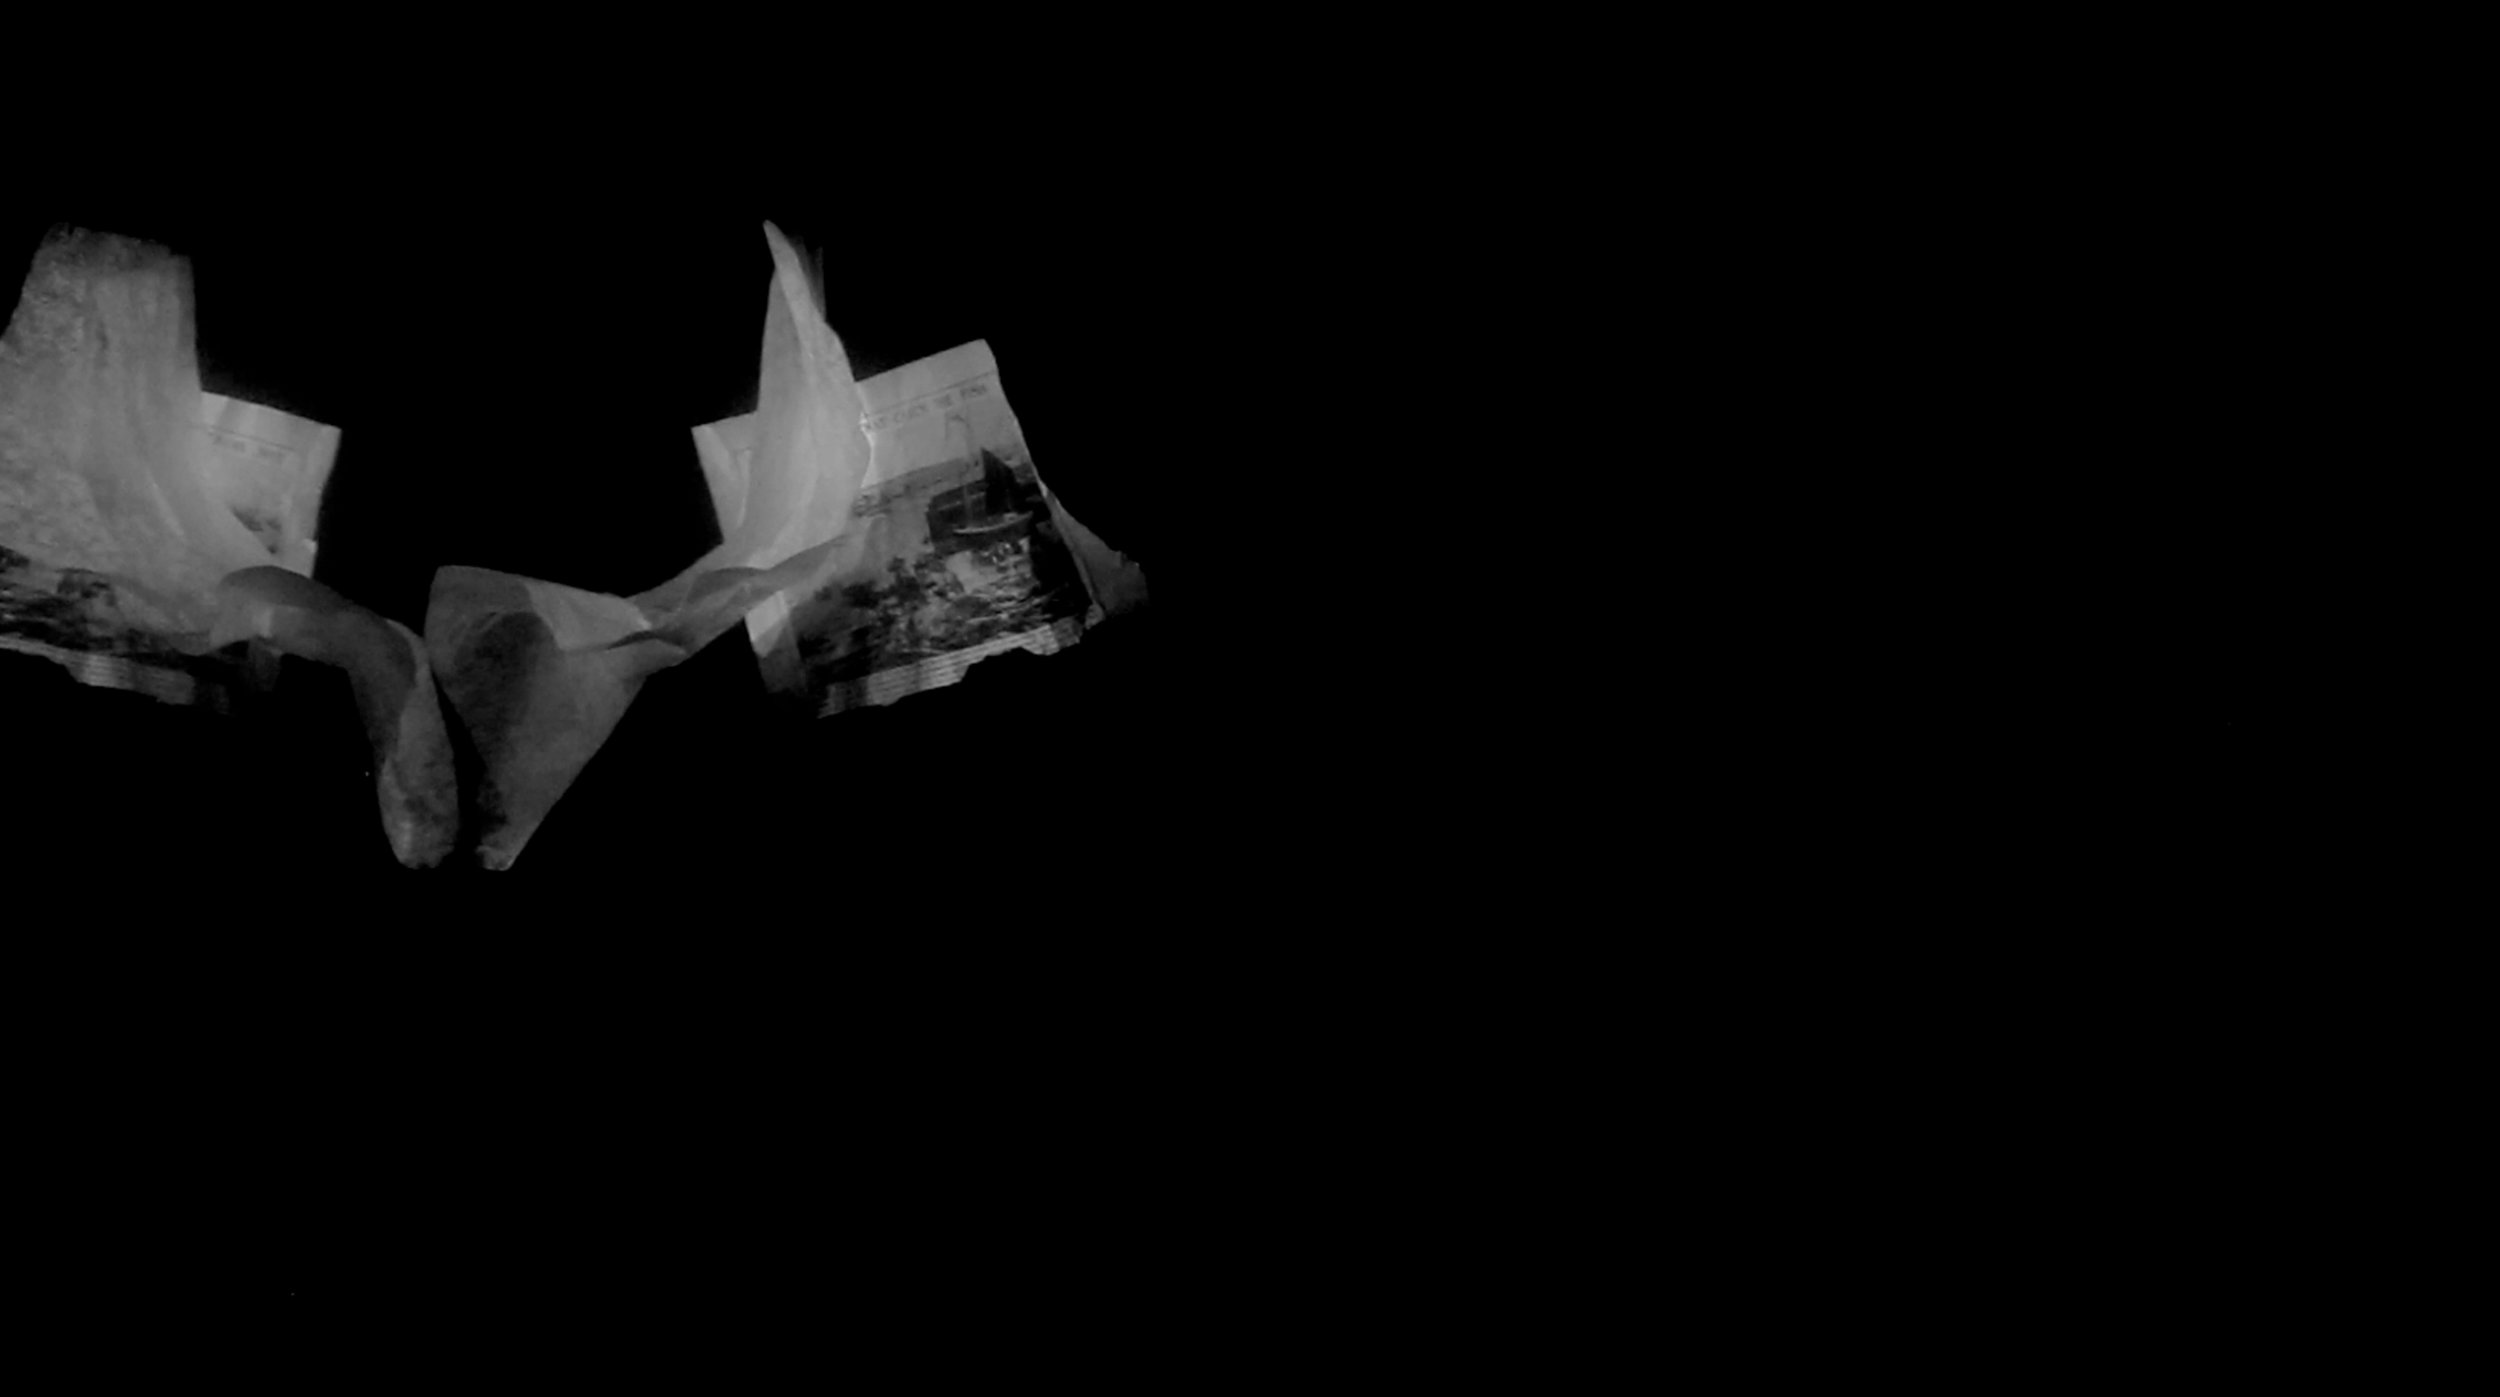 When things start to move   (video still), 2017, single-channel video, duration 4:50mins, loop